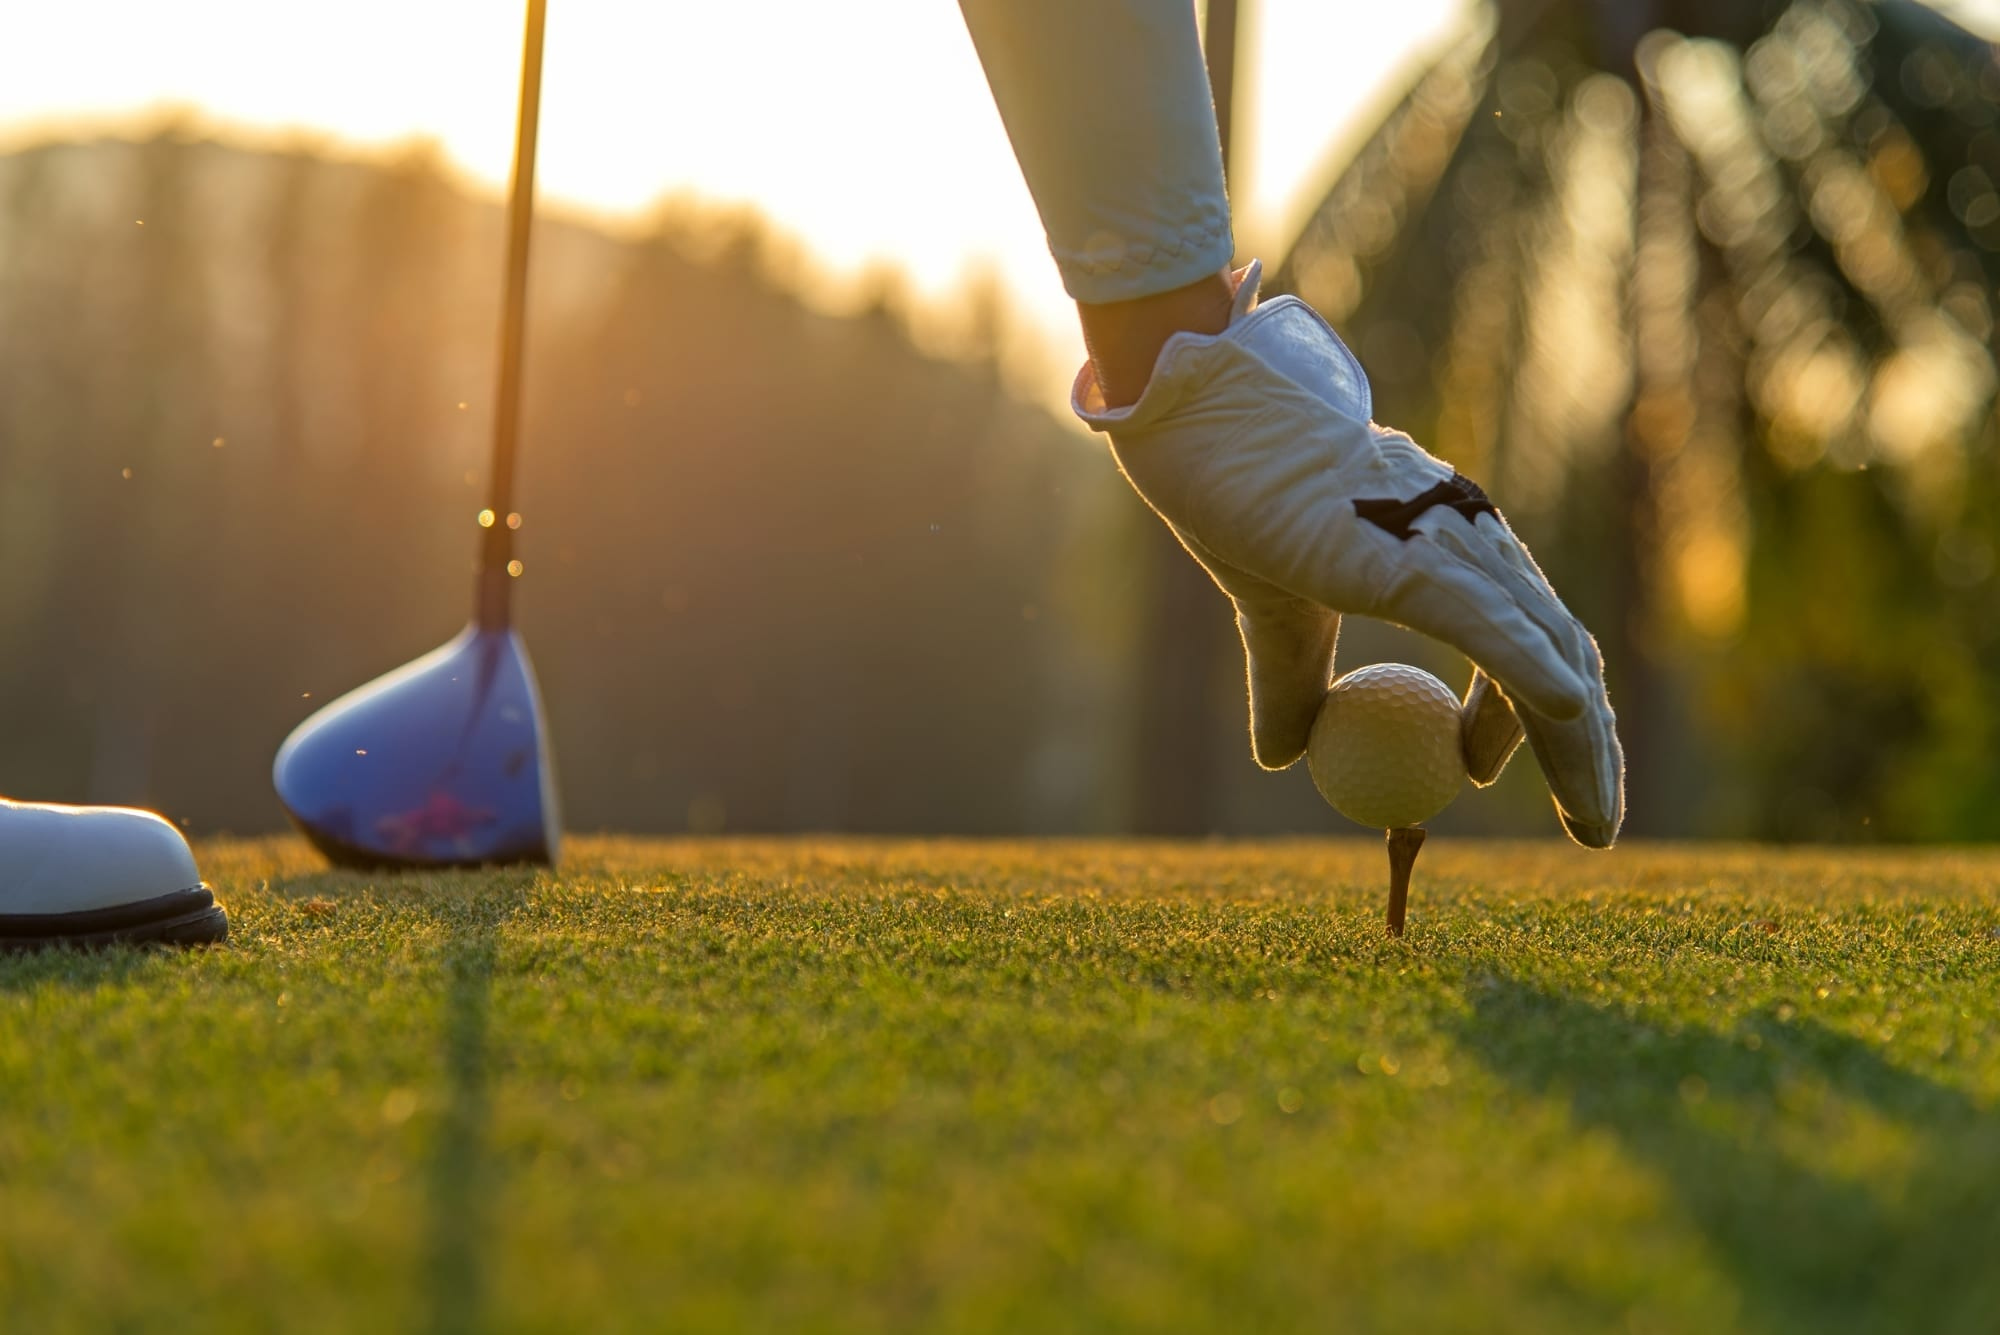 Spend A Weekend with Friends on The Golf Course